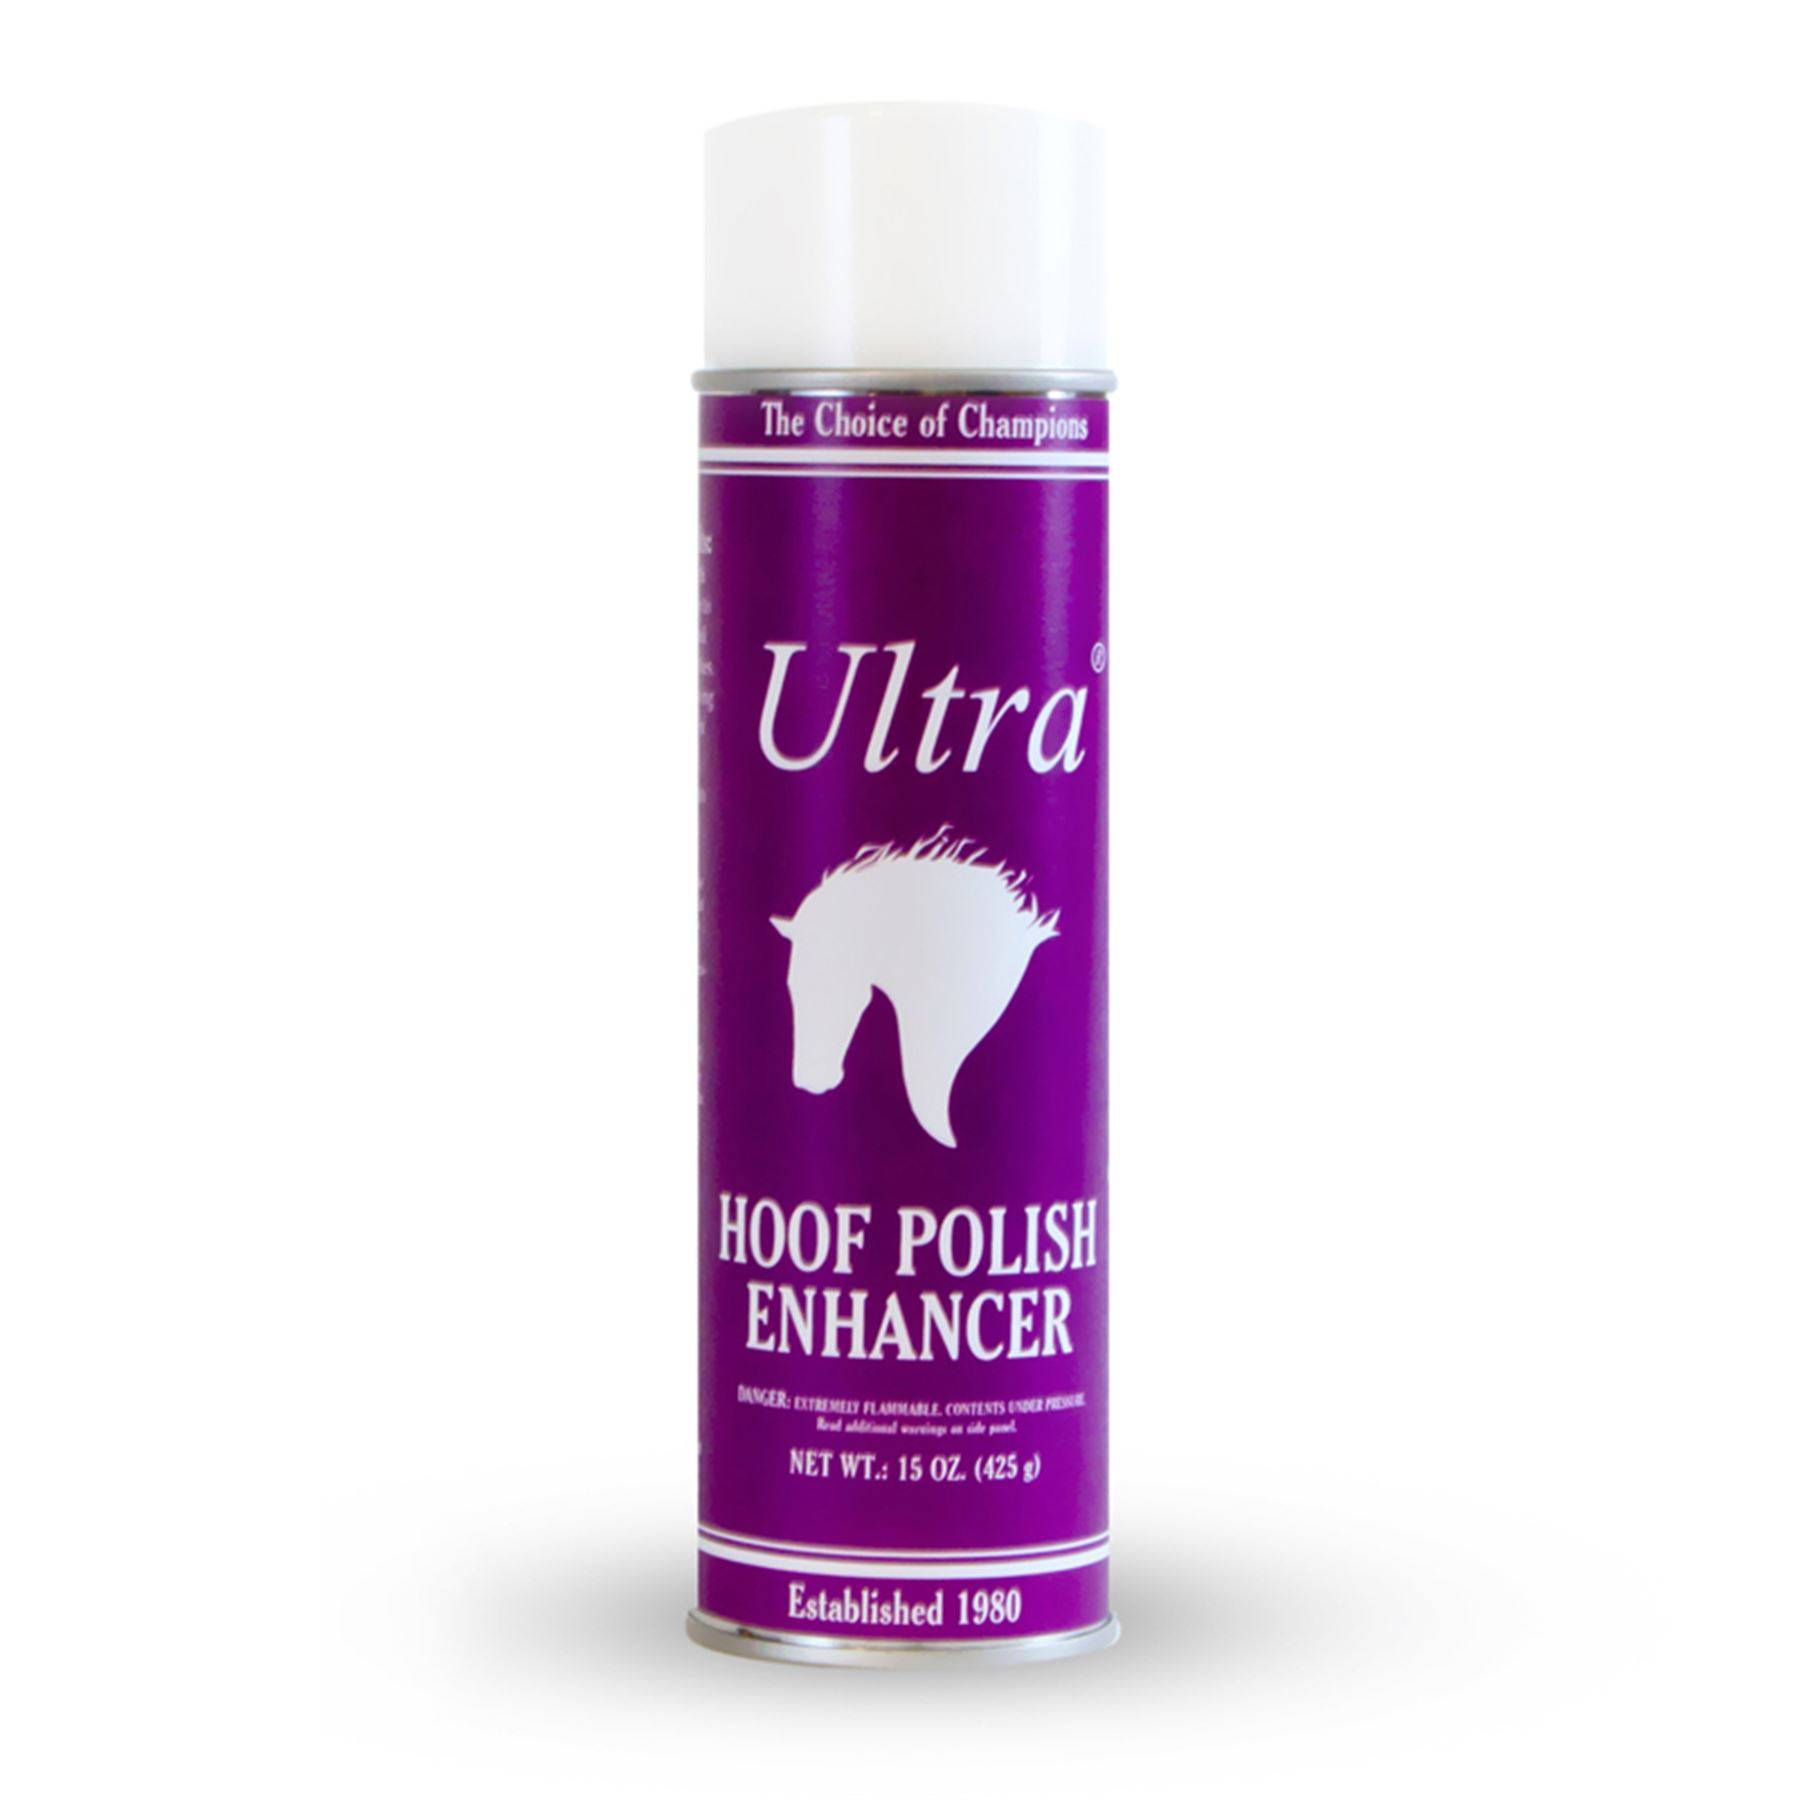 Ultra® Hoof Polish Enhancer